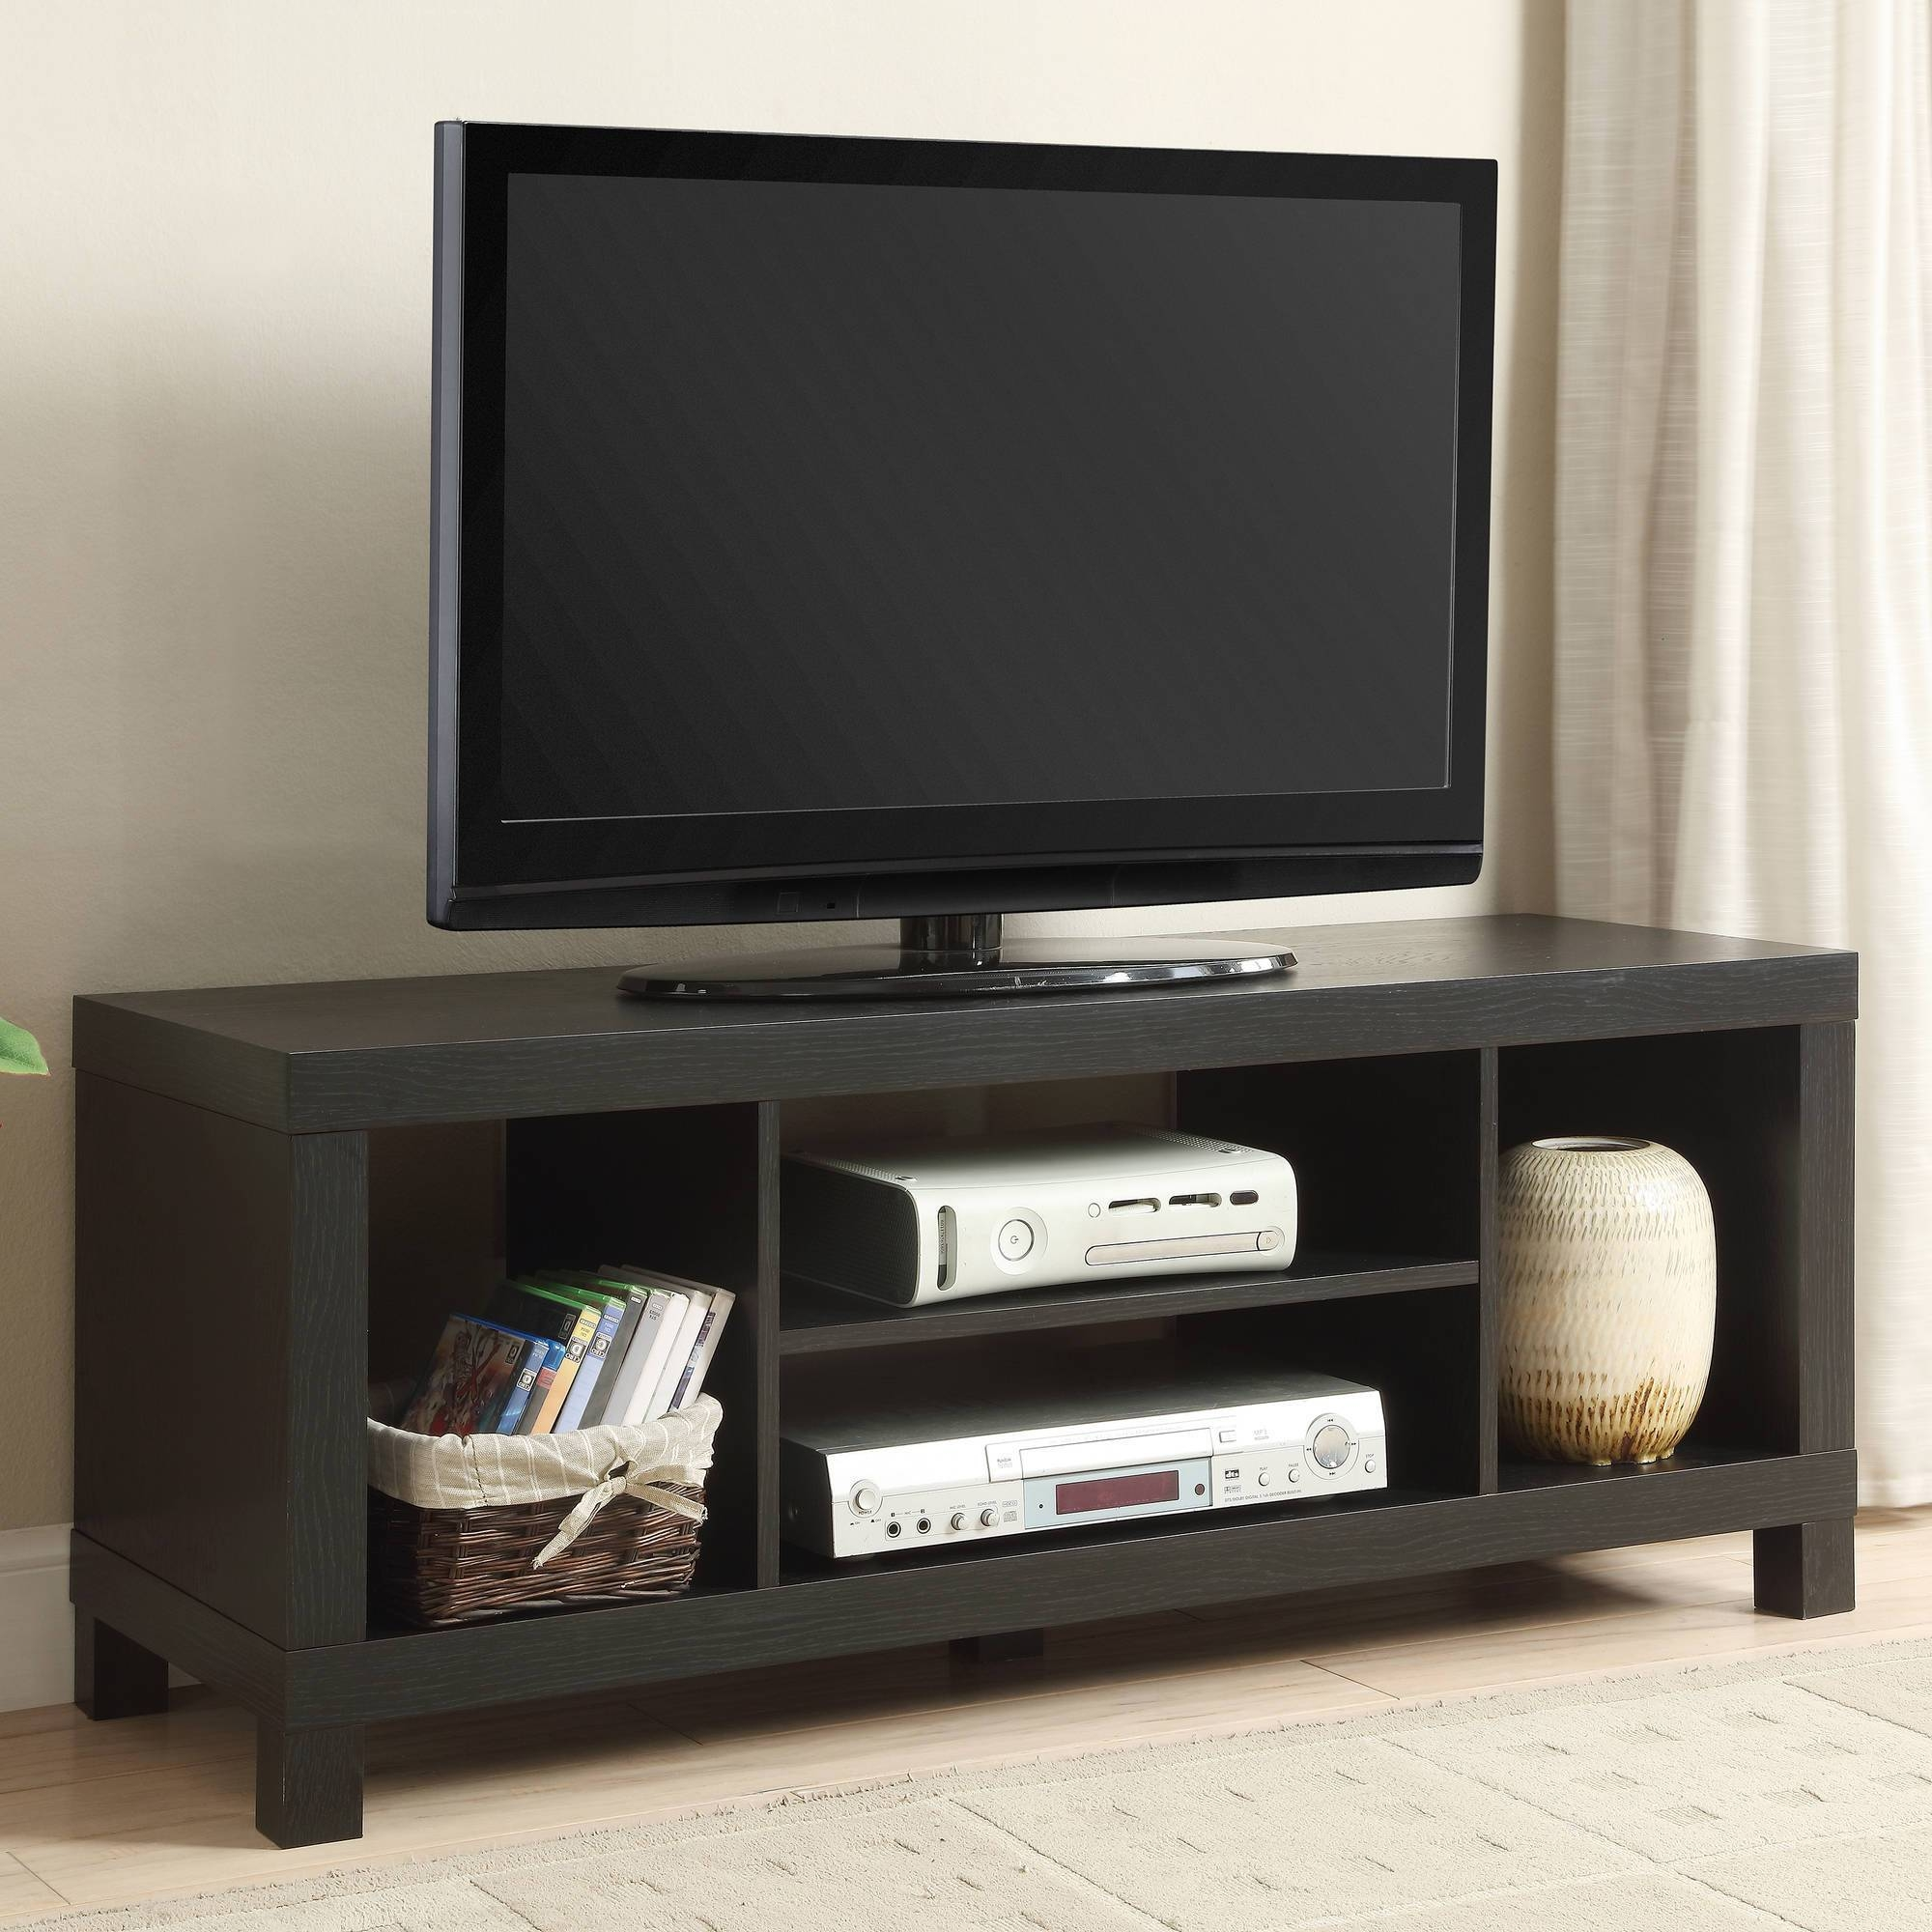 Tv Stands & Entertainment Centers - Walmart throughout Tall Black Tv Cabinets (Image 14 of 15)